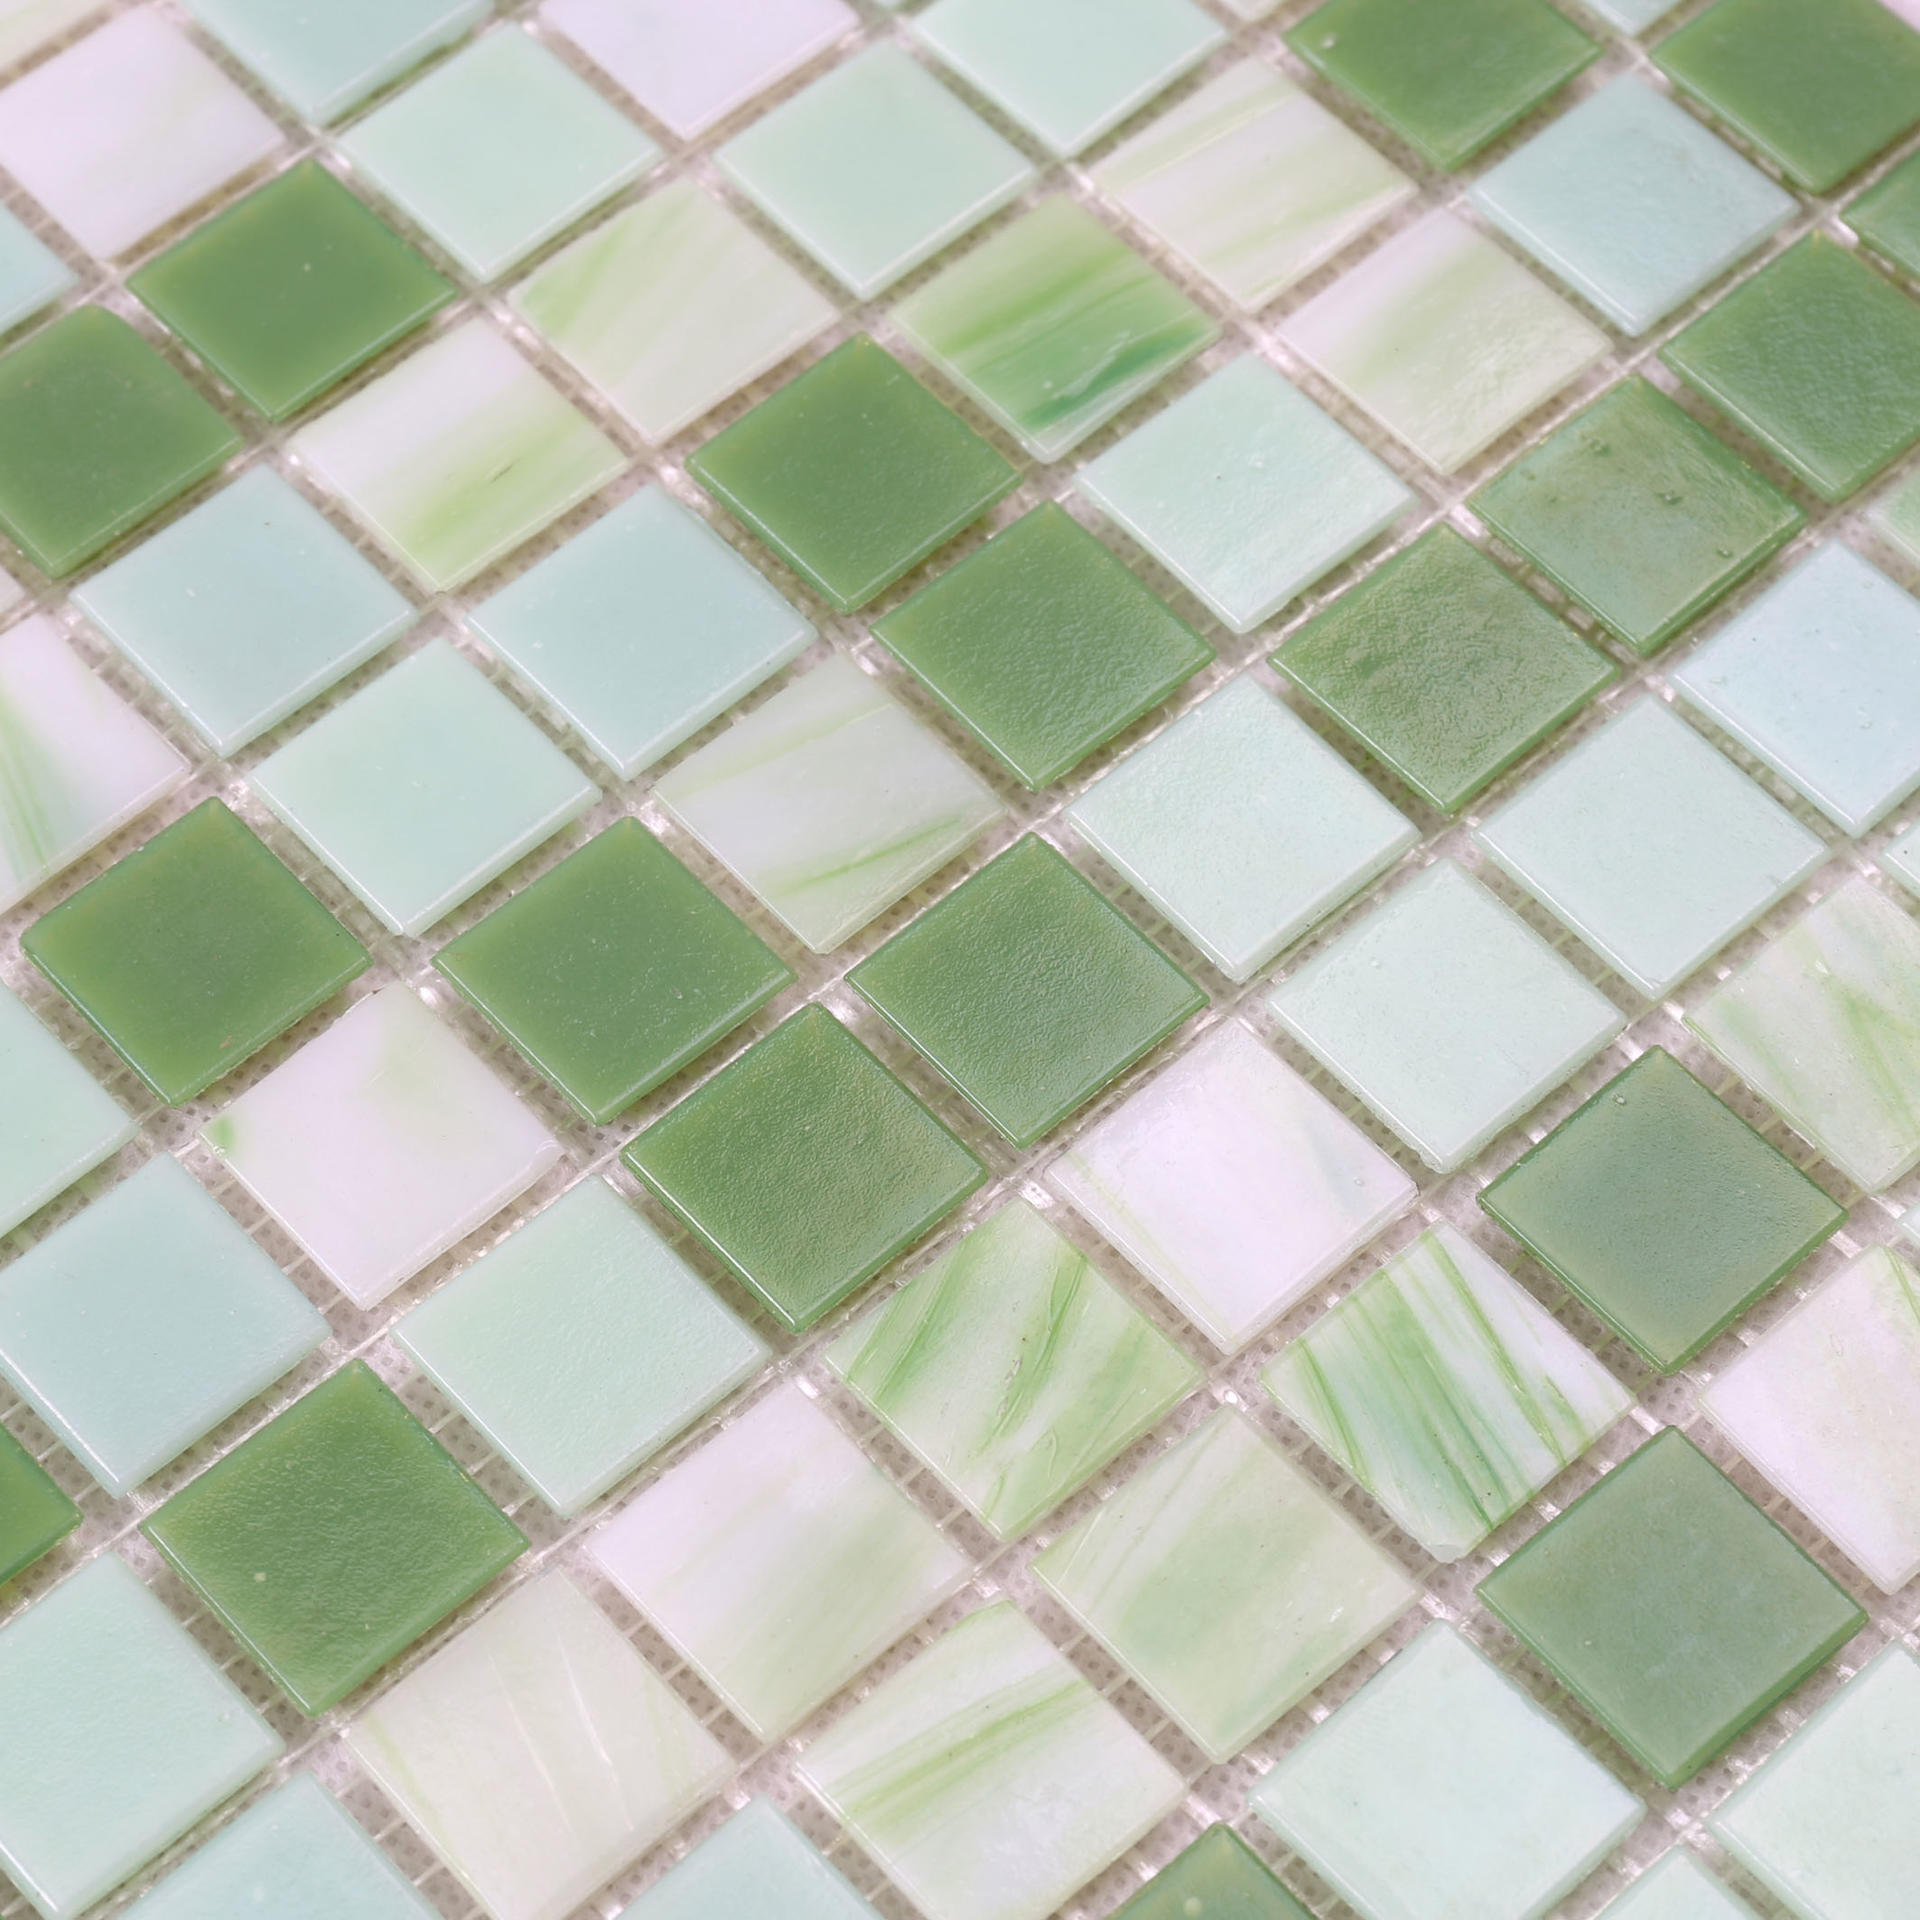 Green golden line hot melting glass swimming pool tiles